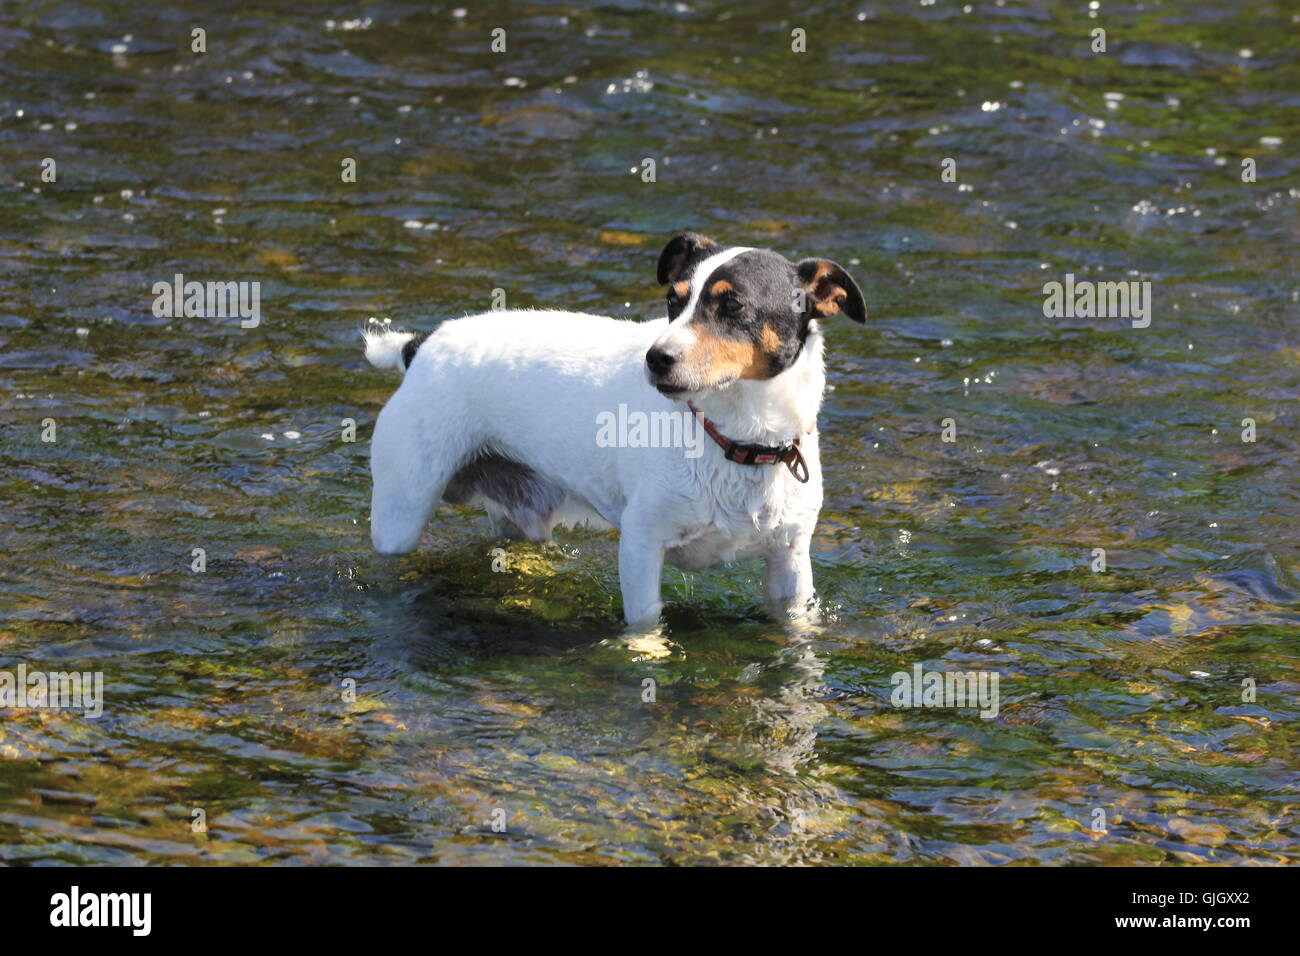 Aberystwyth, Wales, UK. 16th August, 2016. UK Weather: A hot day on the Welsh coast ! A Jack russell terrier & - Stock Image